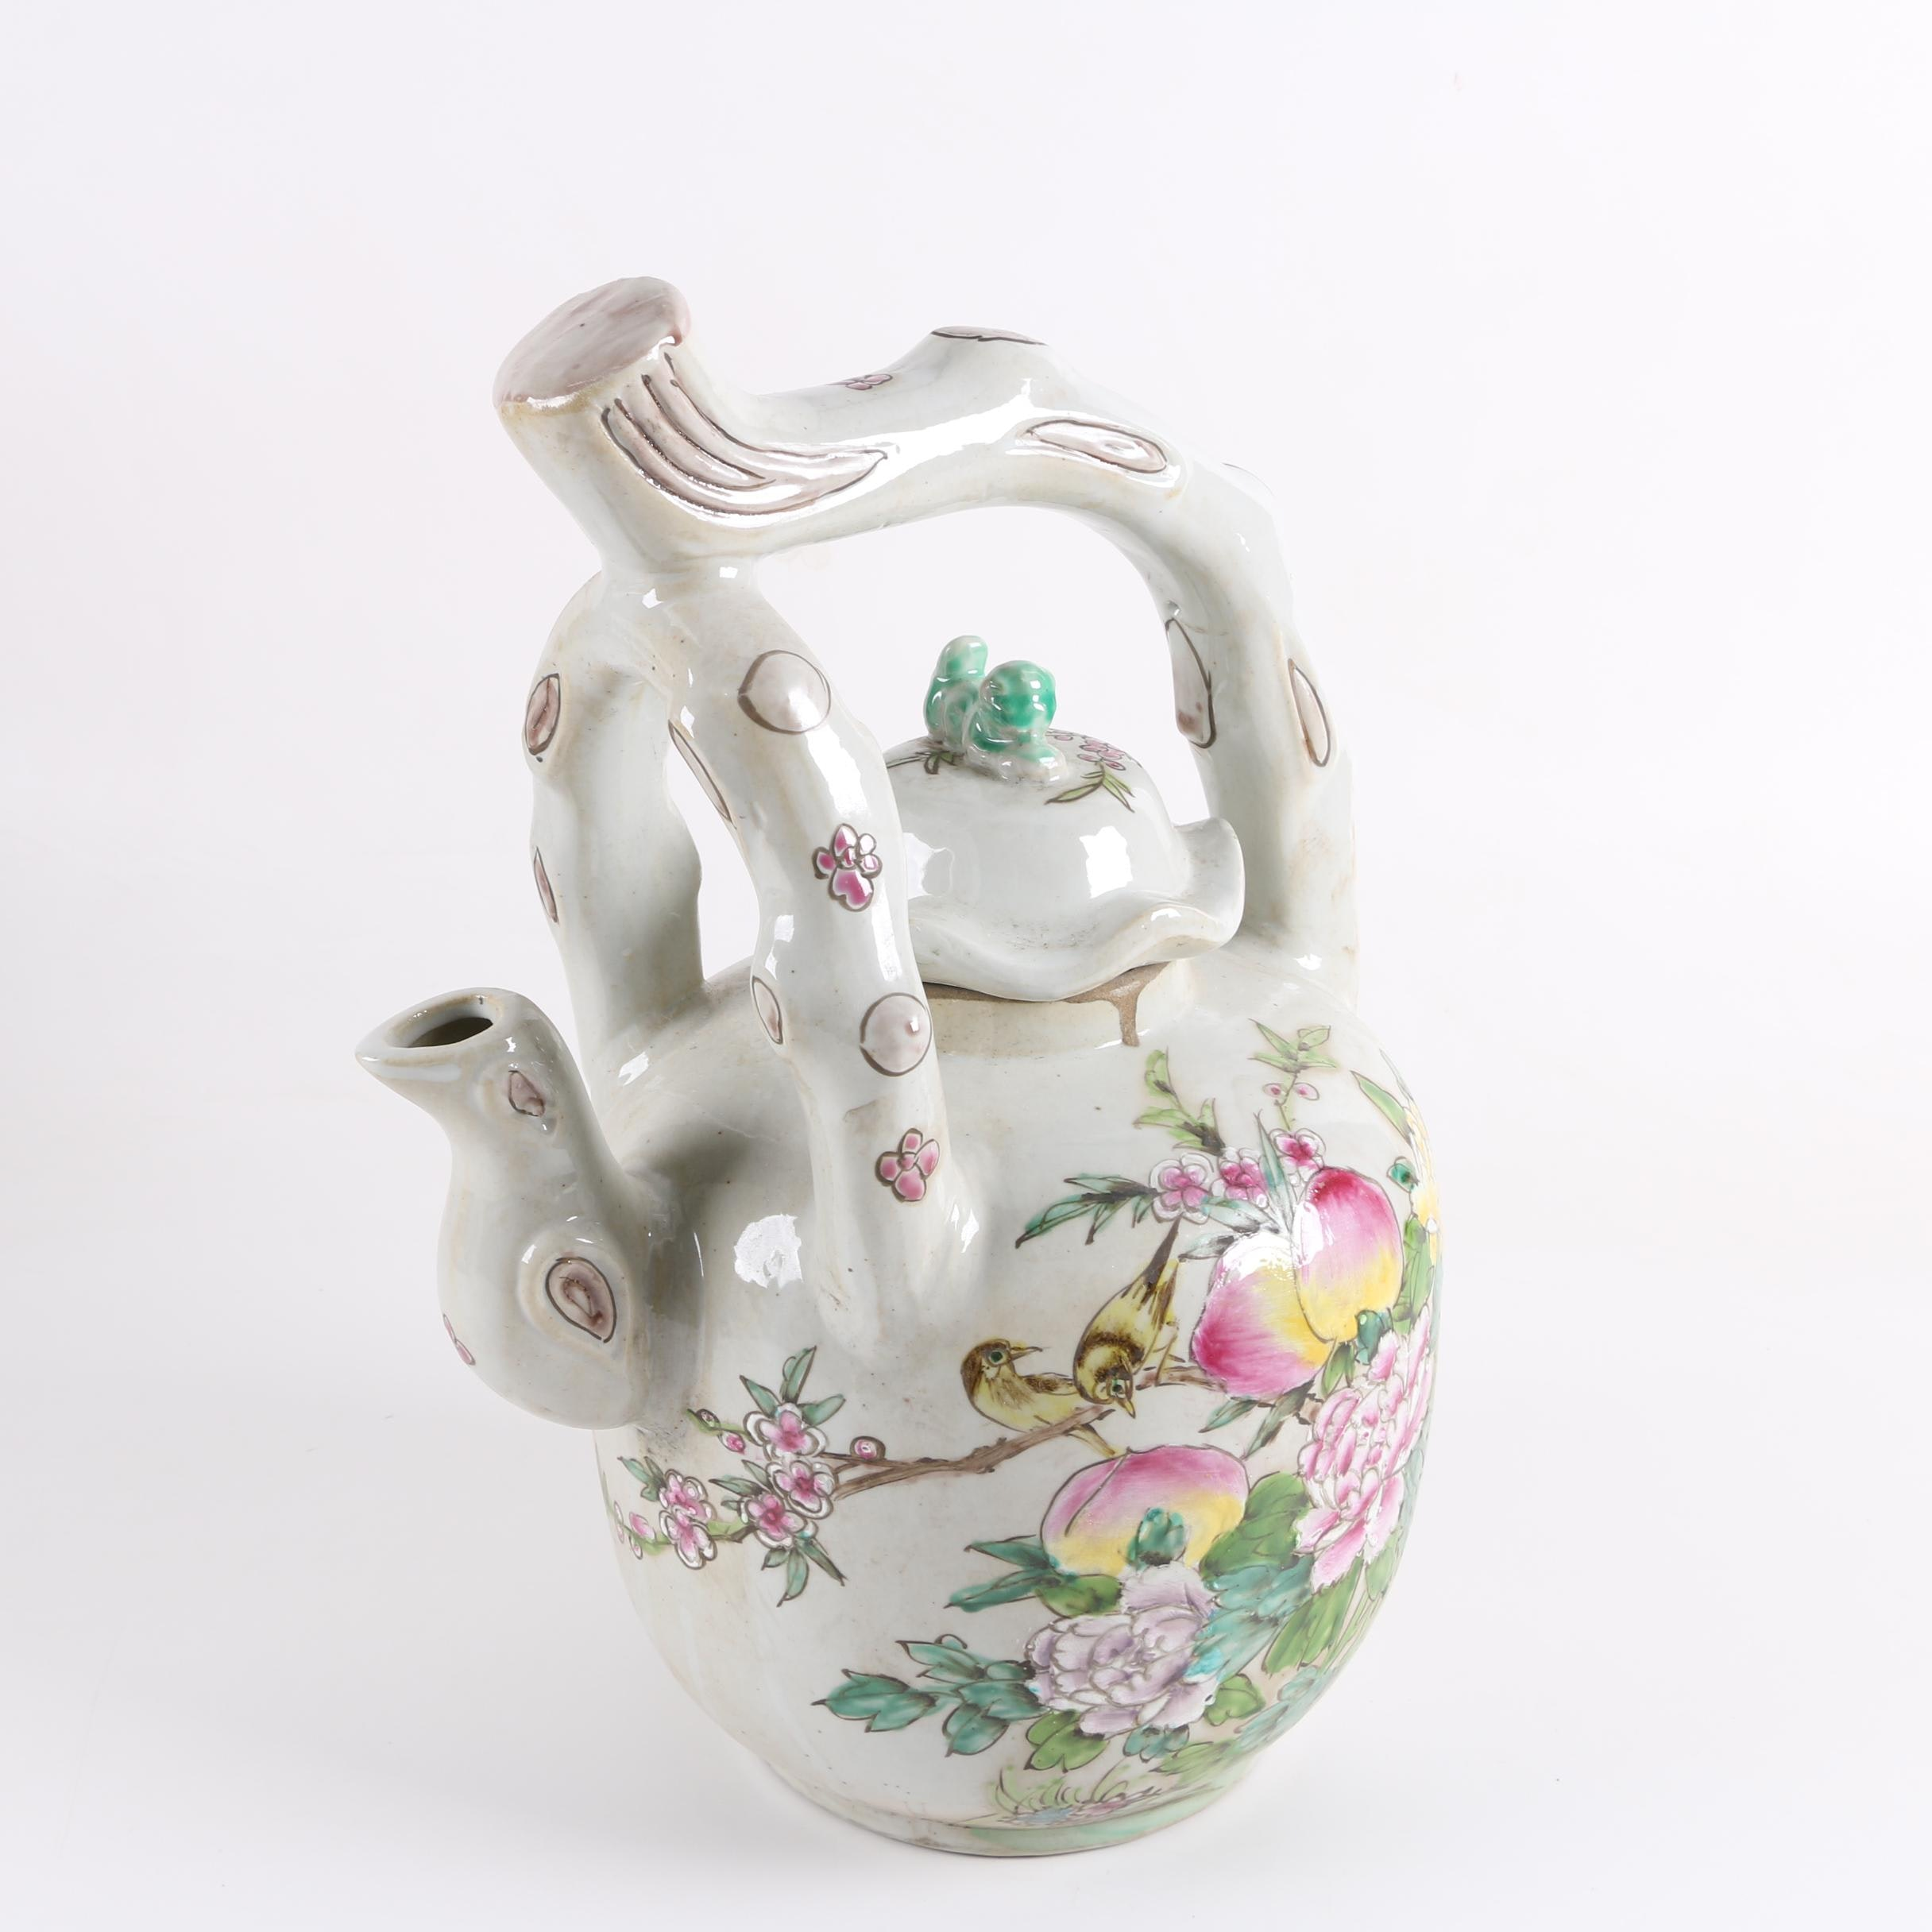 Chinese Hand-Painted Porcelain Teapot